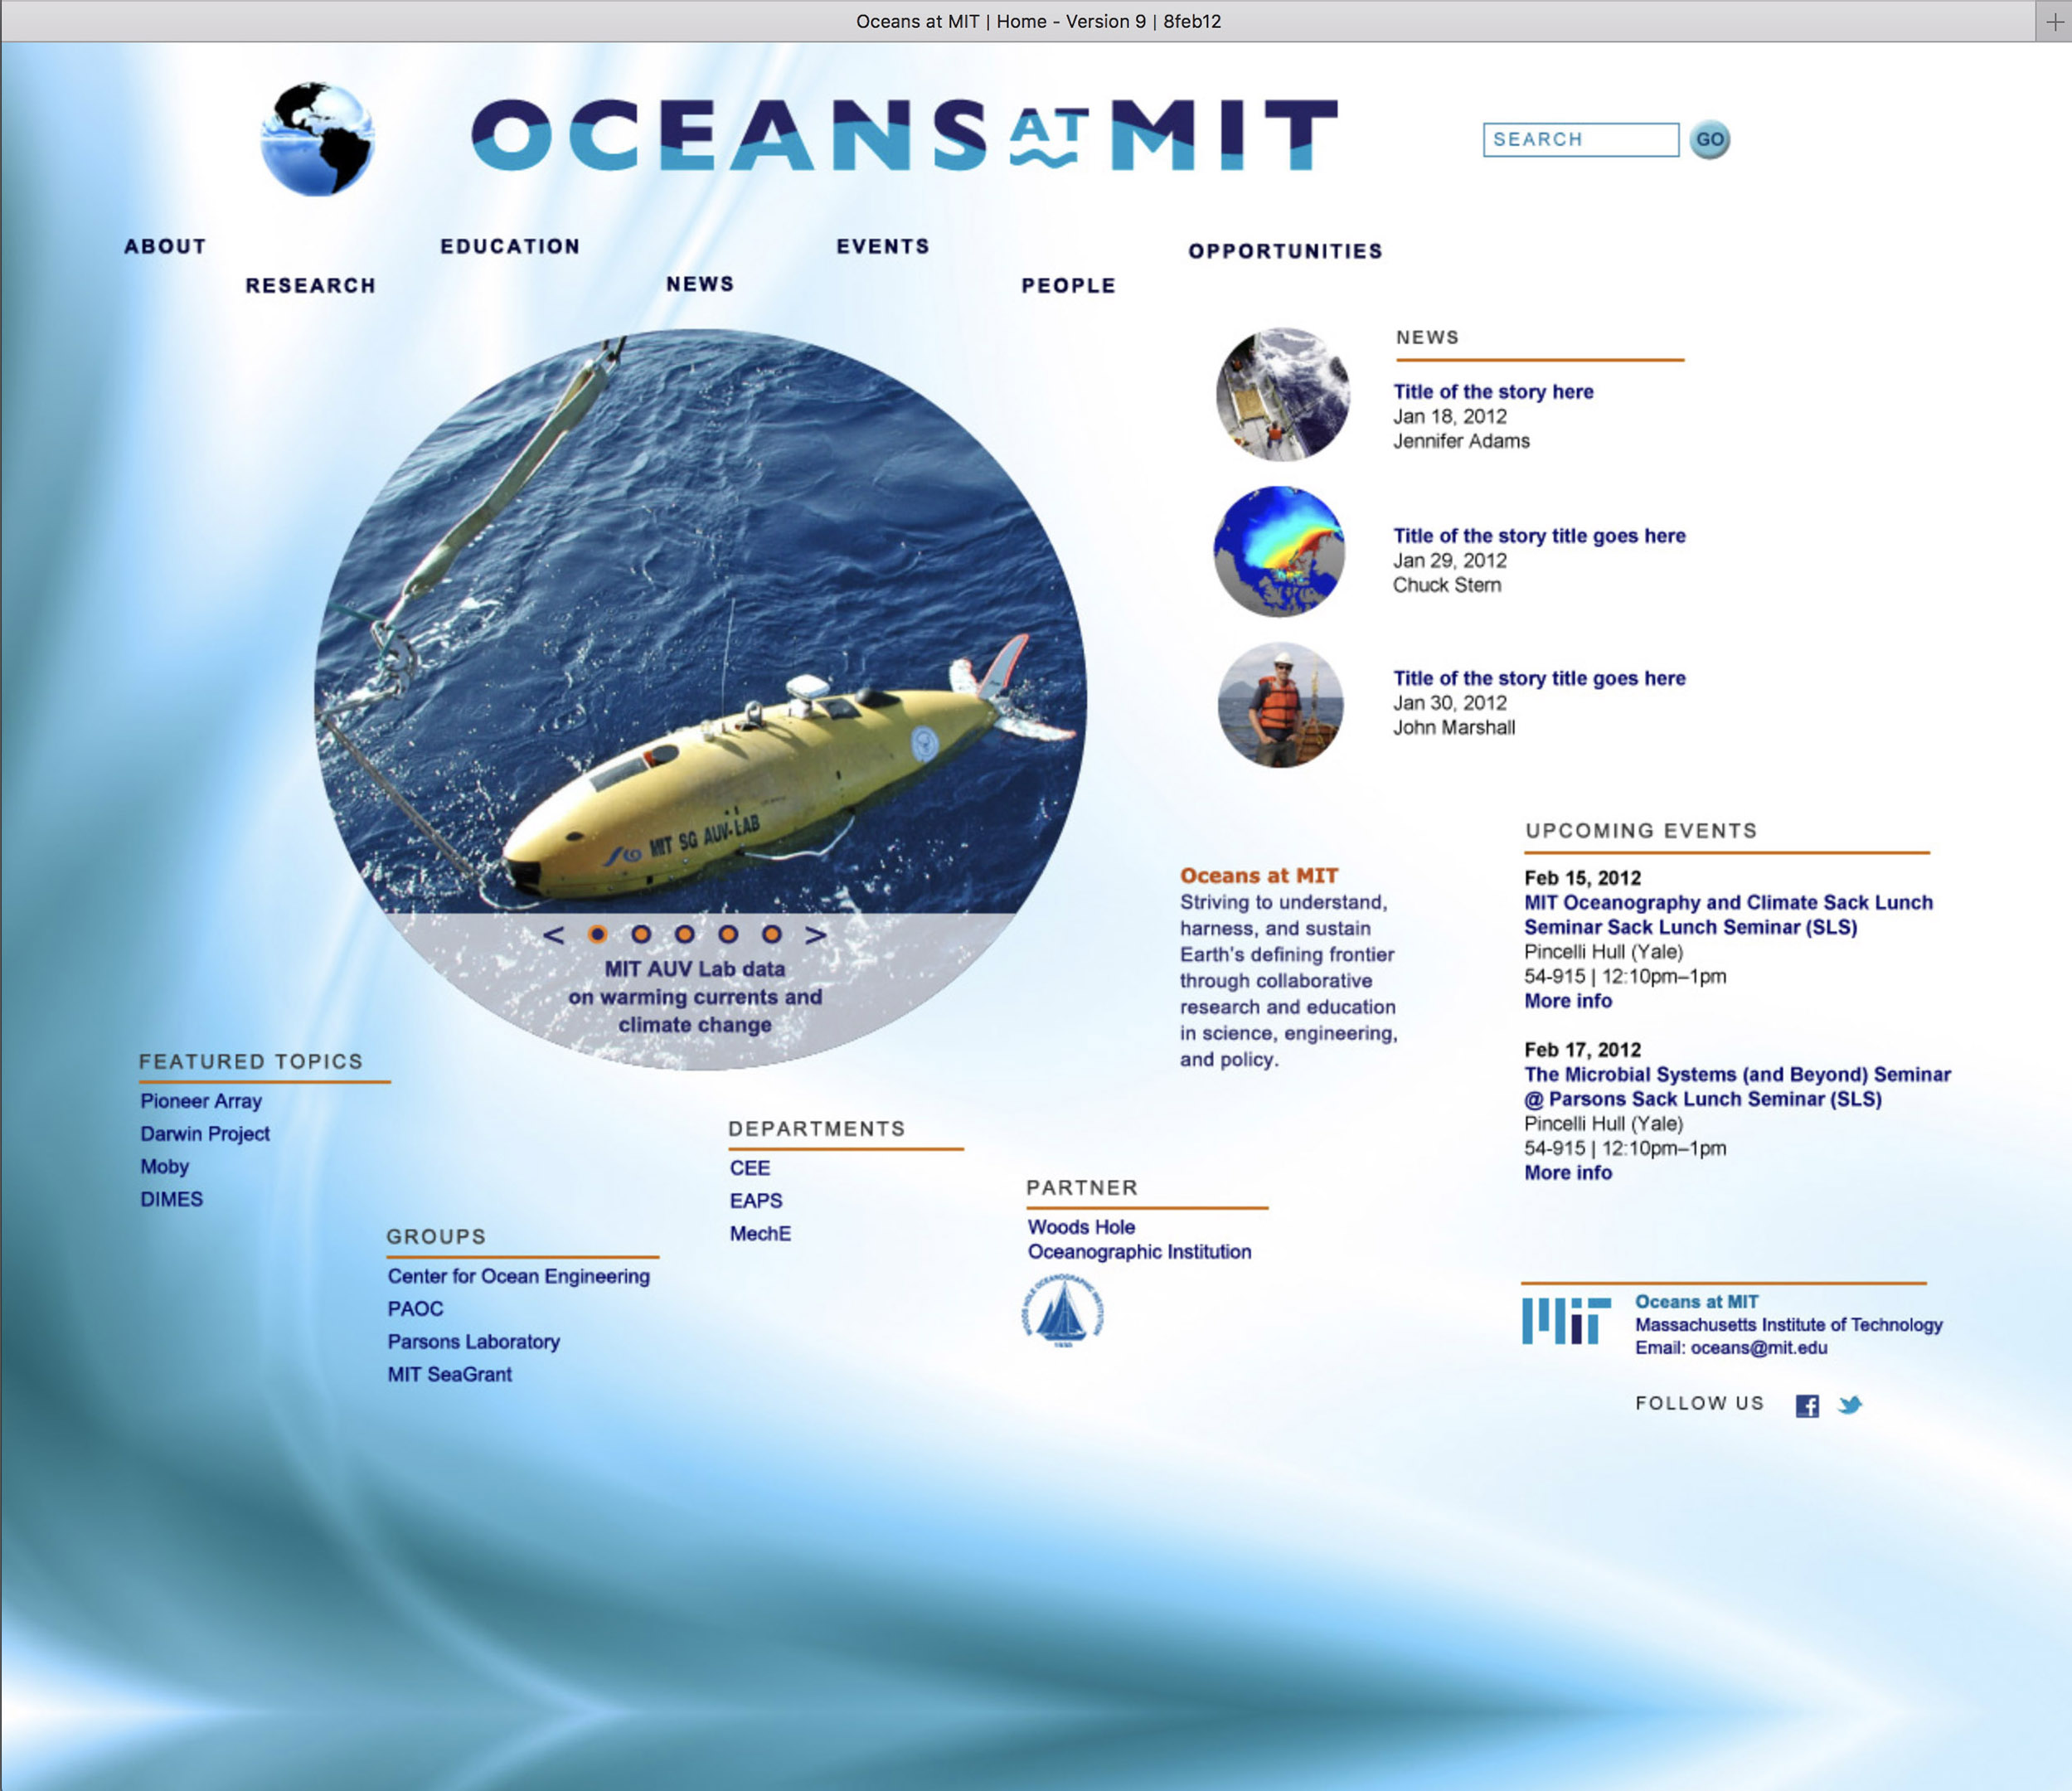 Mockup for Oceans at MIT website, 2 of 3